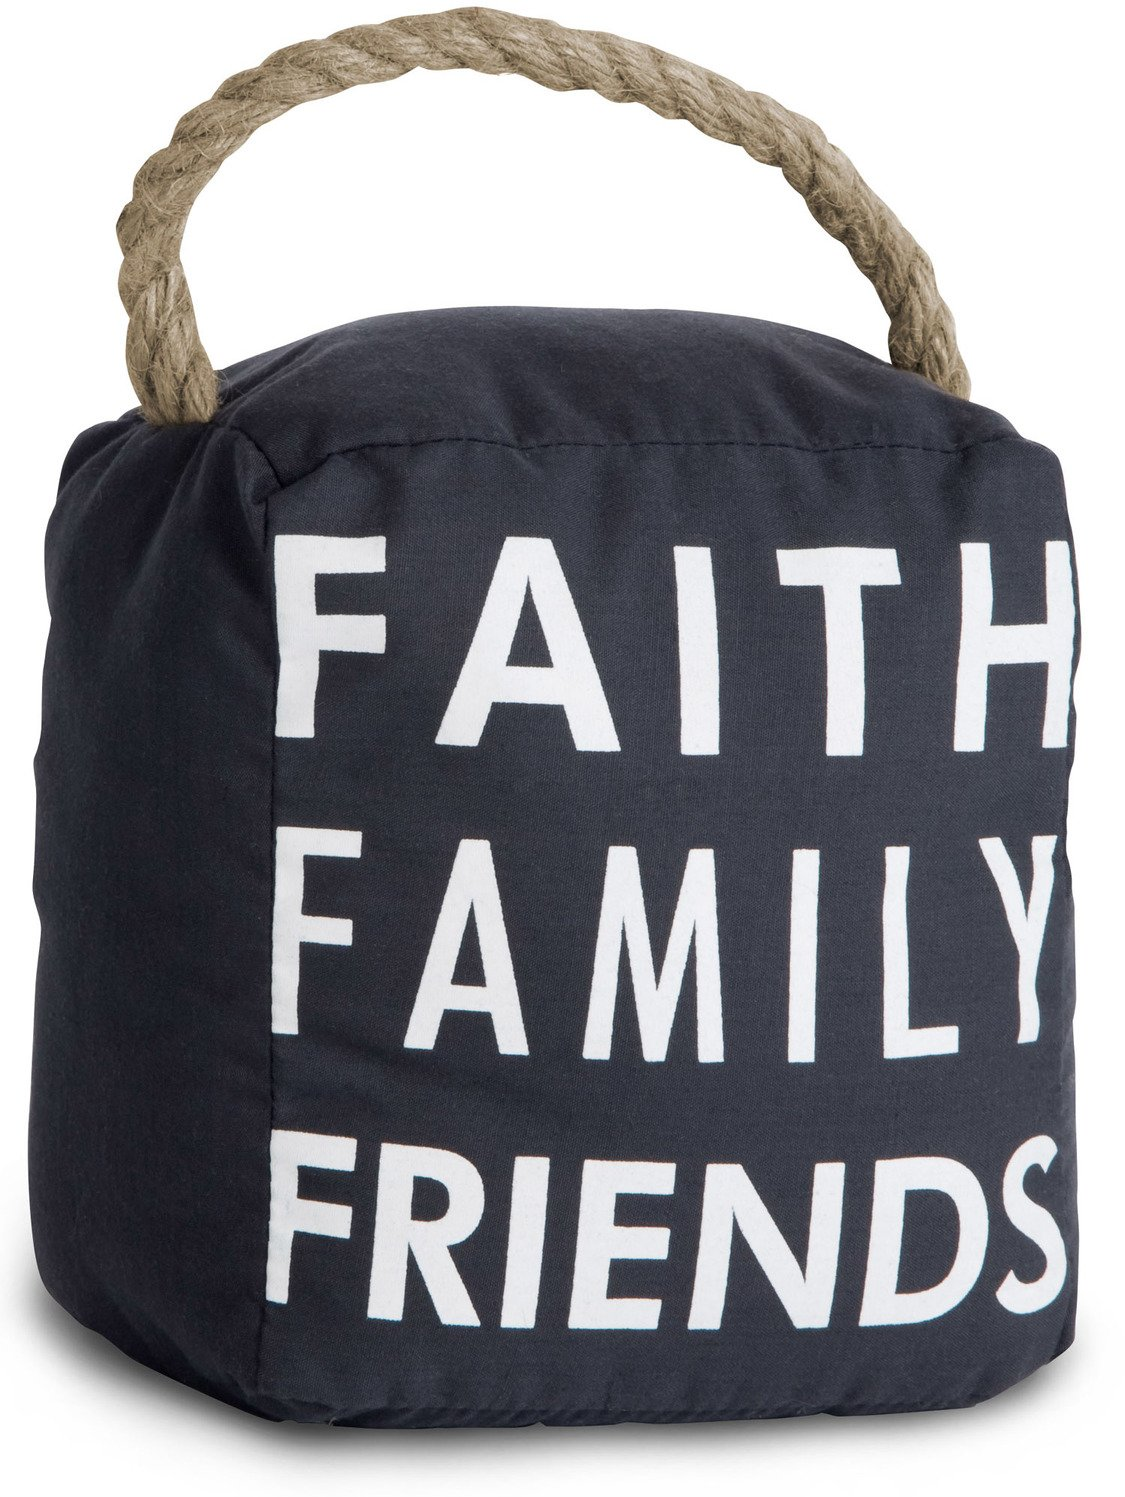 Pavilion Gift Company 72159 Faith Family Friends Door Stopper, 5 by 6-Inch